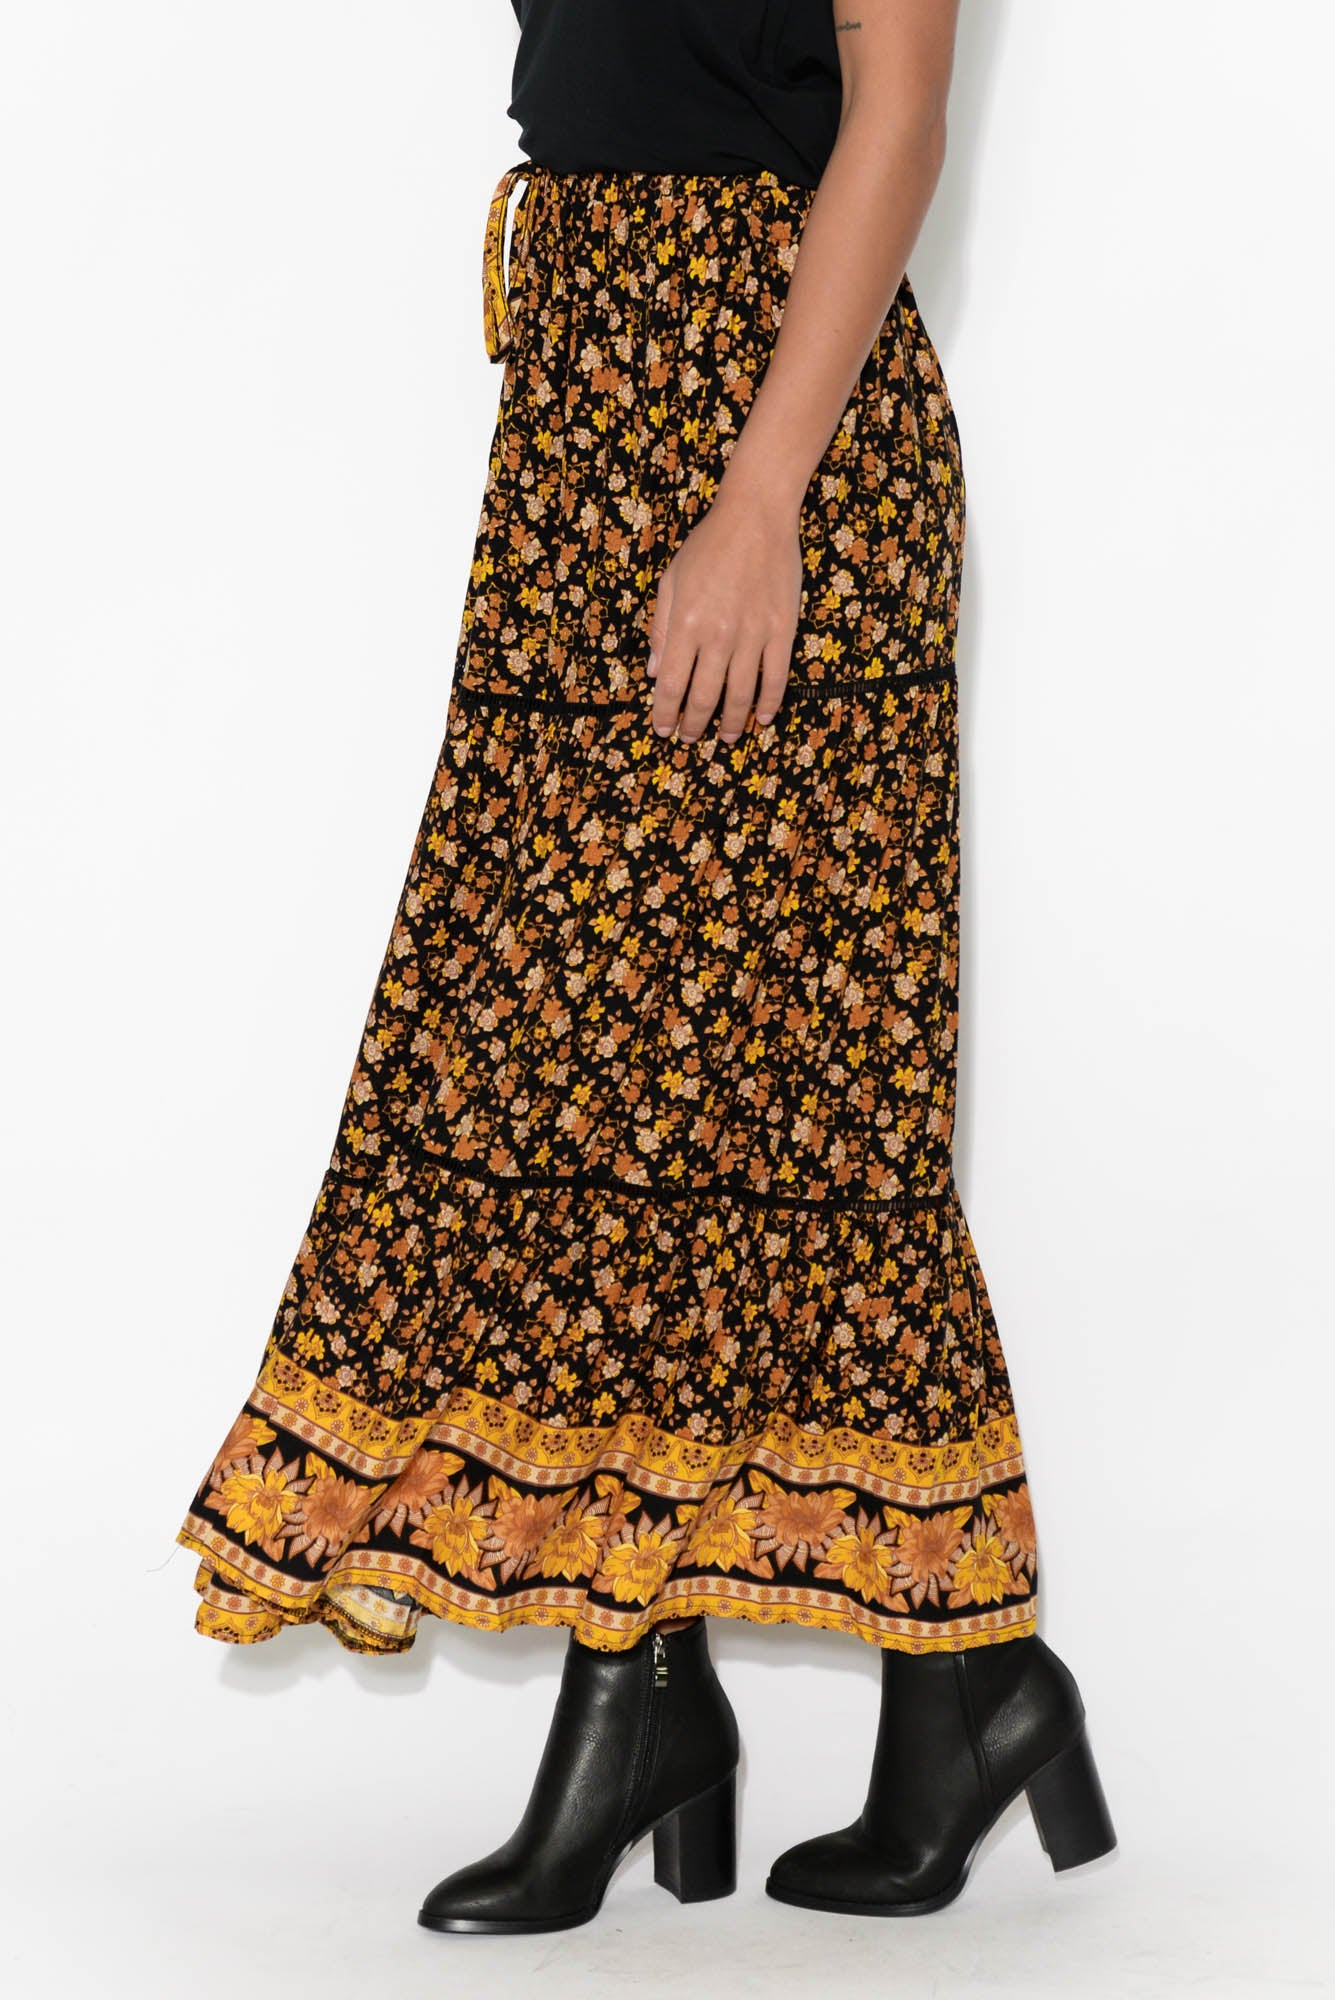 Torrance Yellow Floral Maxi Skirt